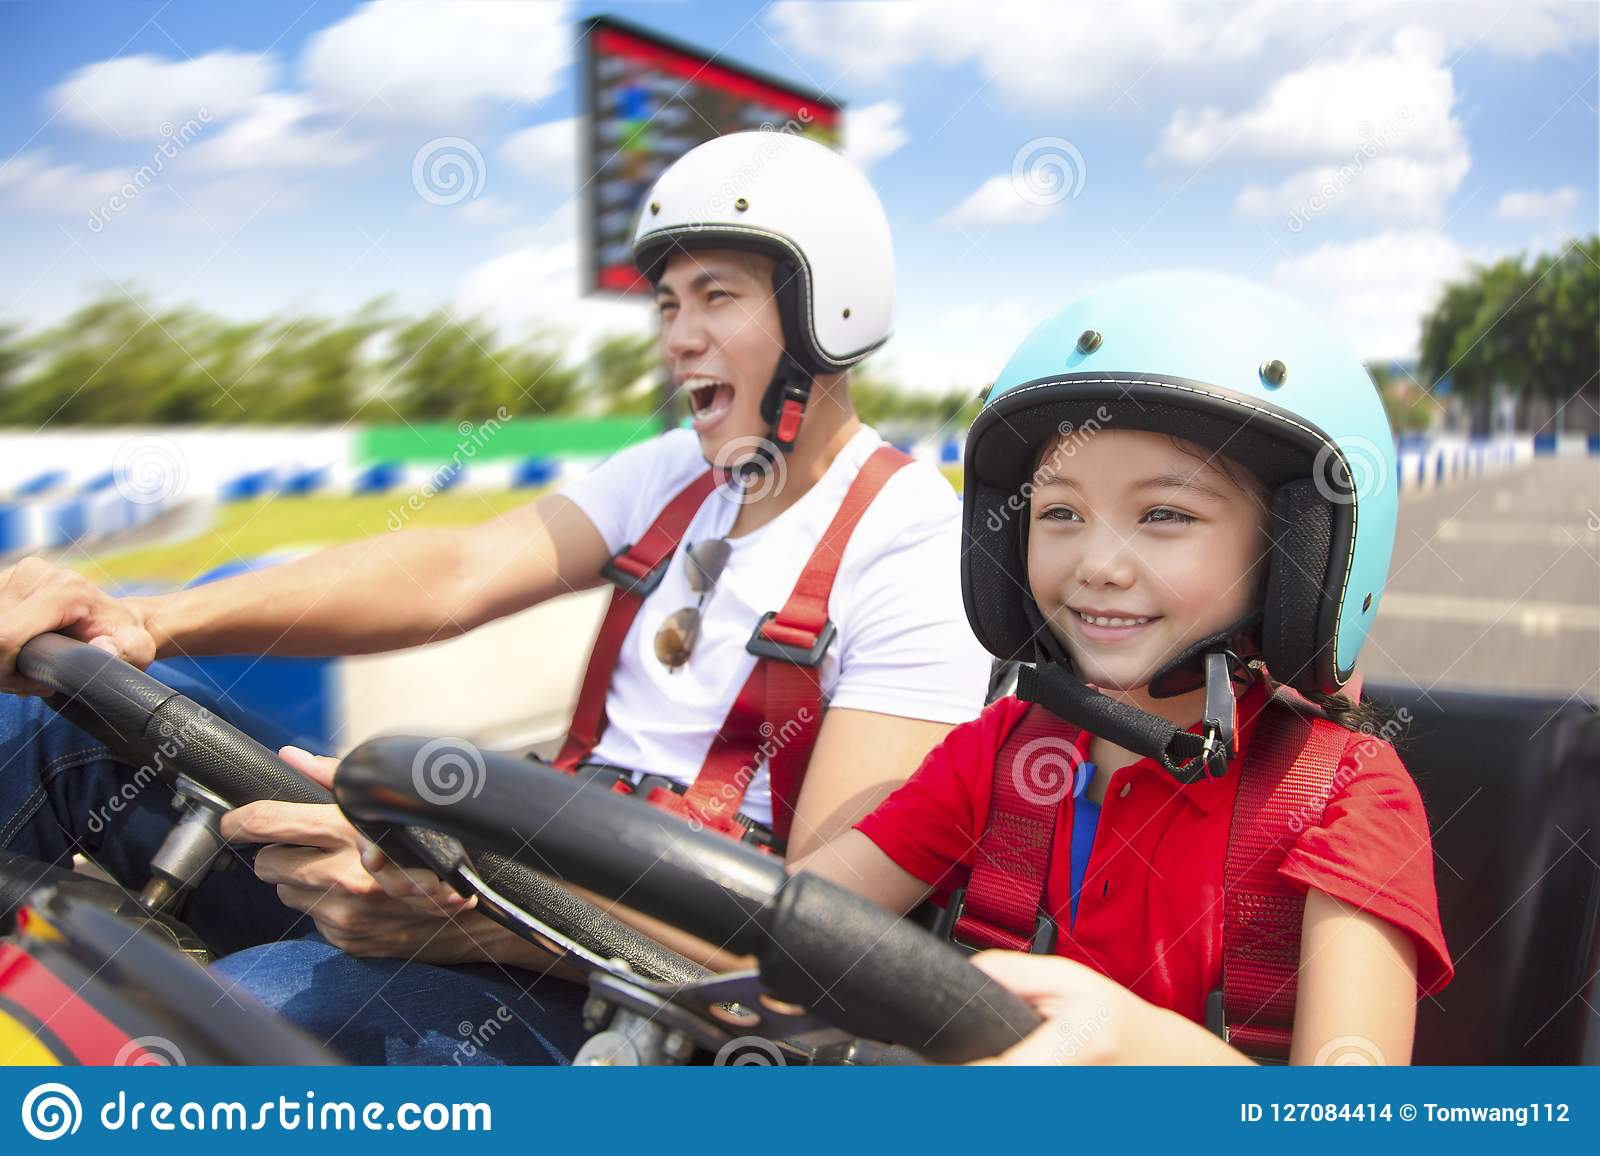 Father and daughter driving go kart